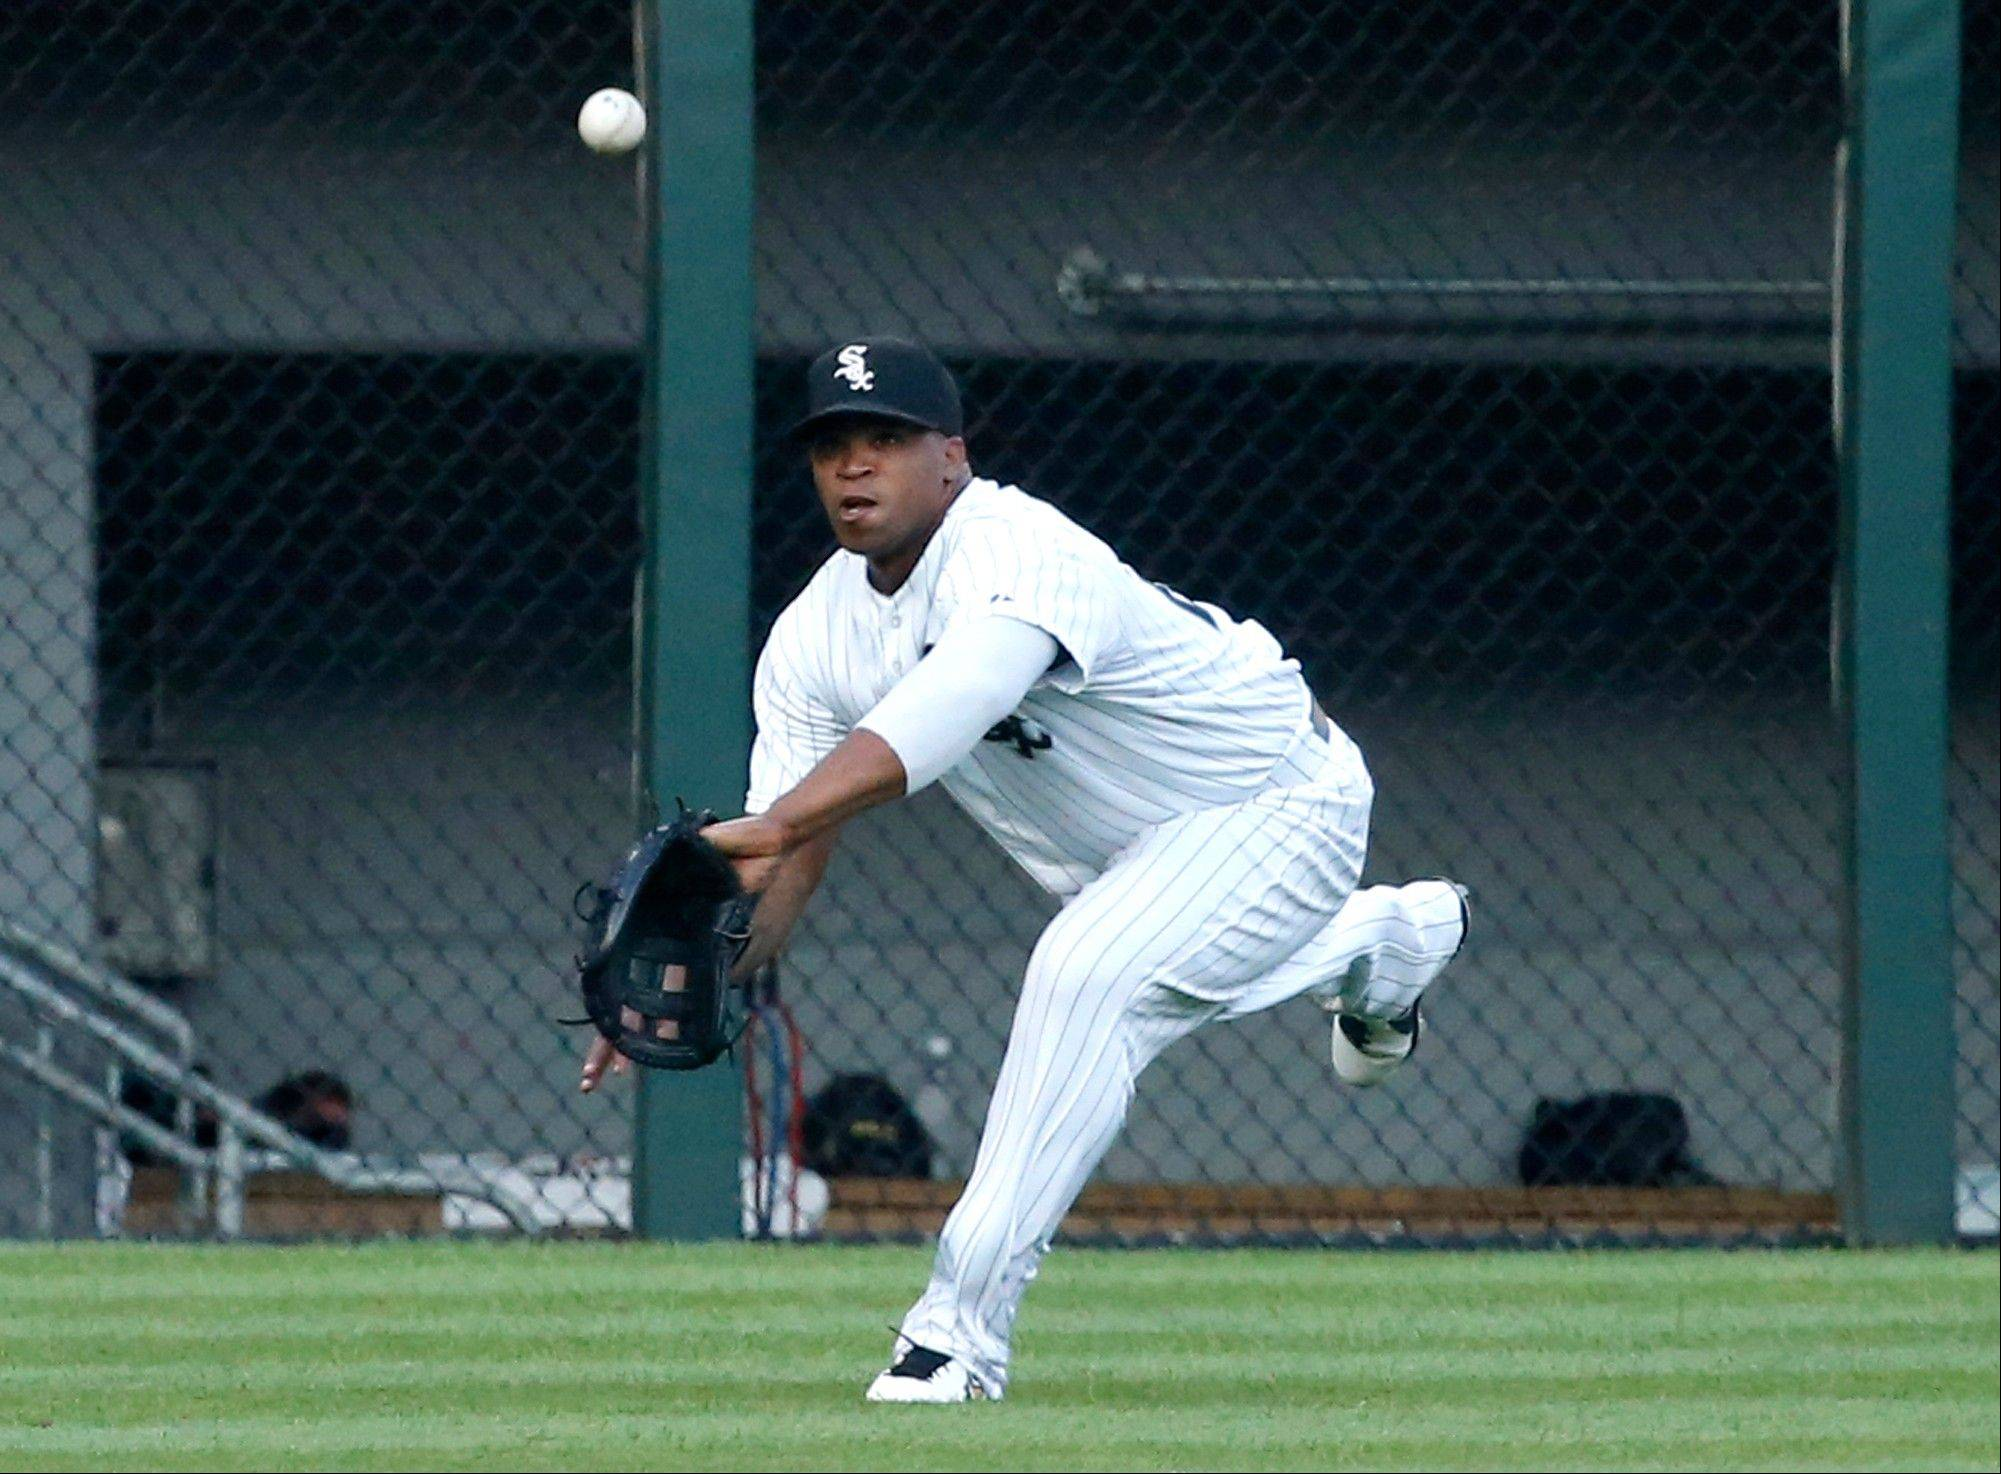 White Sox left fielder Dayan Viciedo makes the catch on a sinking fly ball hit by Detroit's Austin Jackson during the first inning Monday at home.